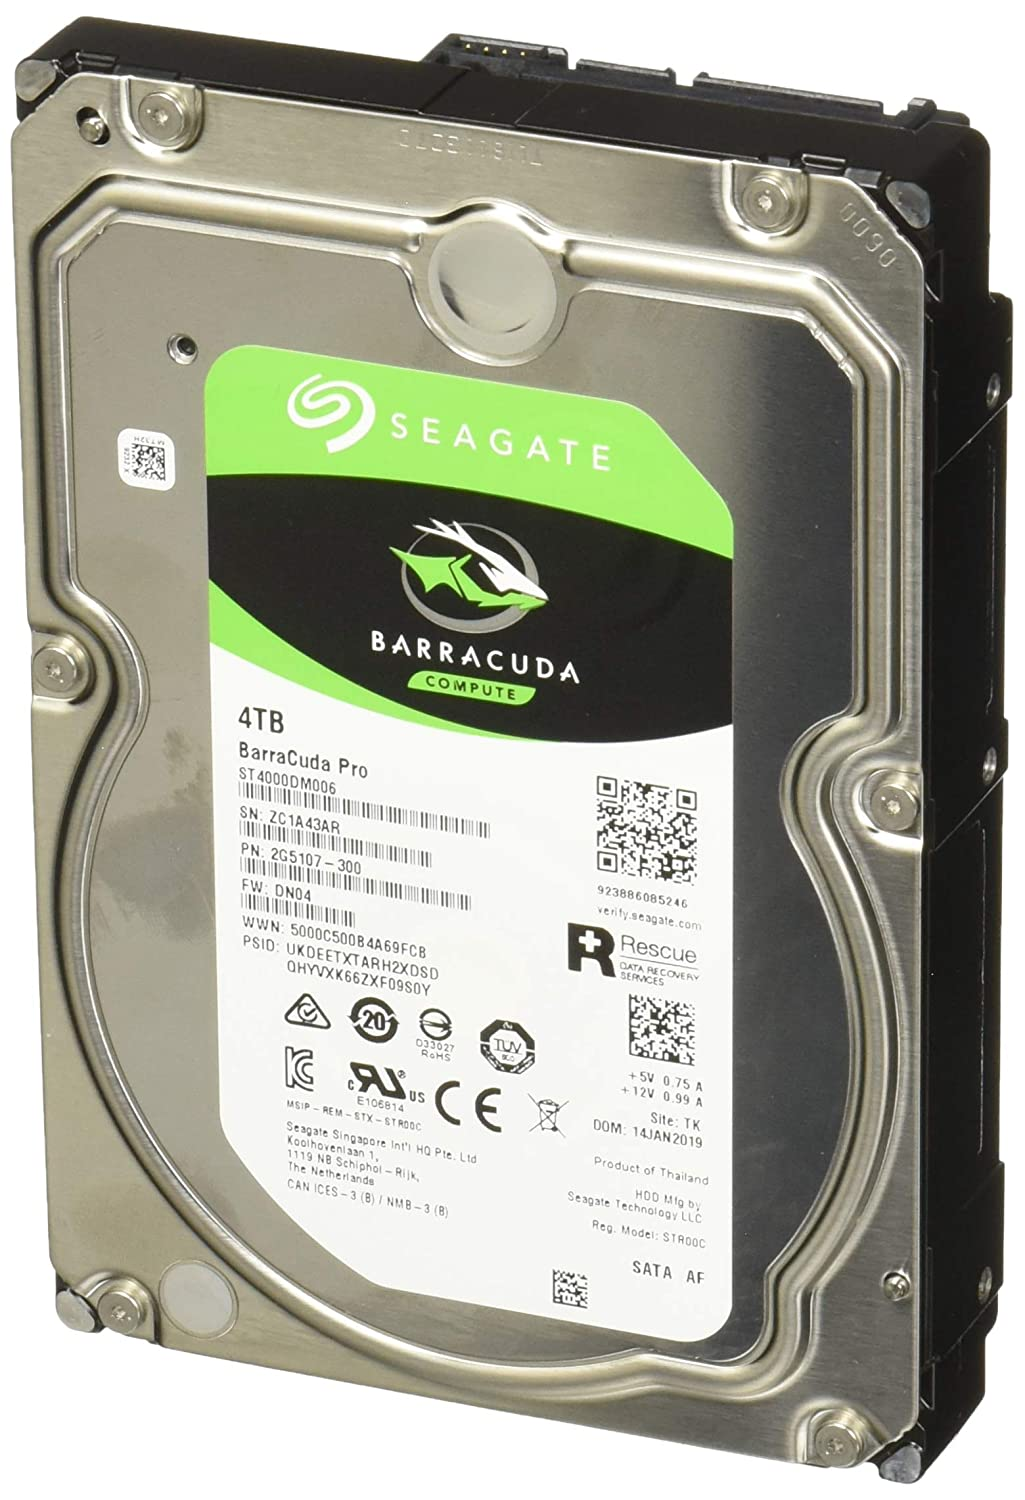 Seagate BarraCuda Pro 4TB Internal Hard Drive Performance HDD – 3.5 Inch SATA 6 Gb/s 7200 RPM 128MB Cache for Computer Desktop PC Laptop, Data Recovery – Frustration Free Packaging (ST4000DM006)